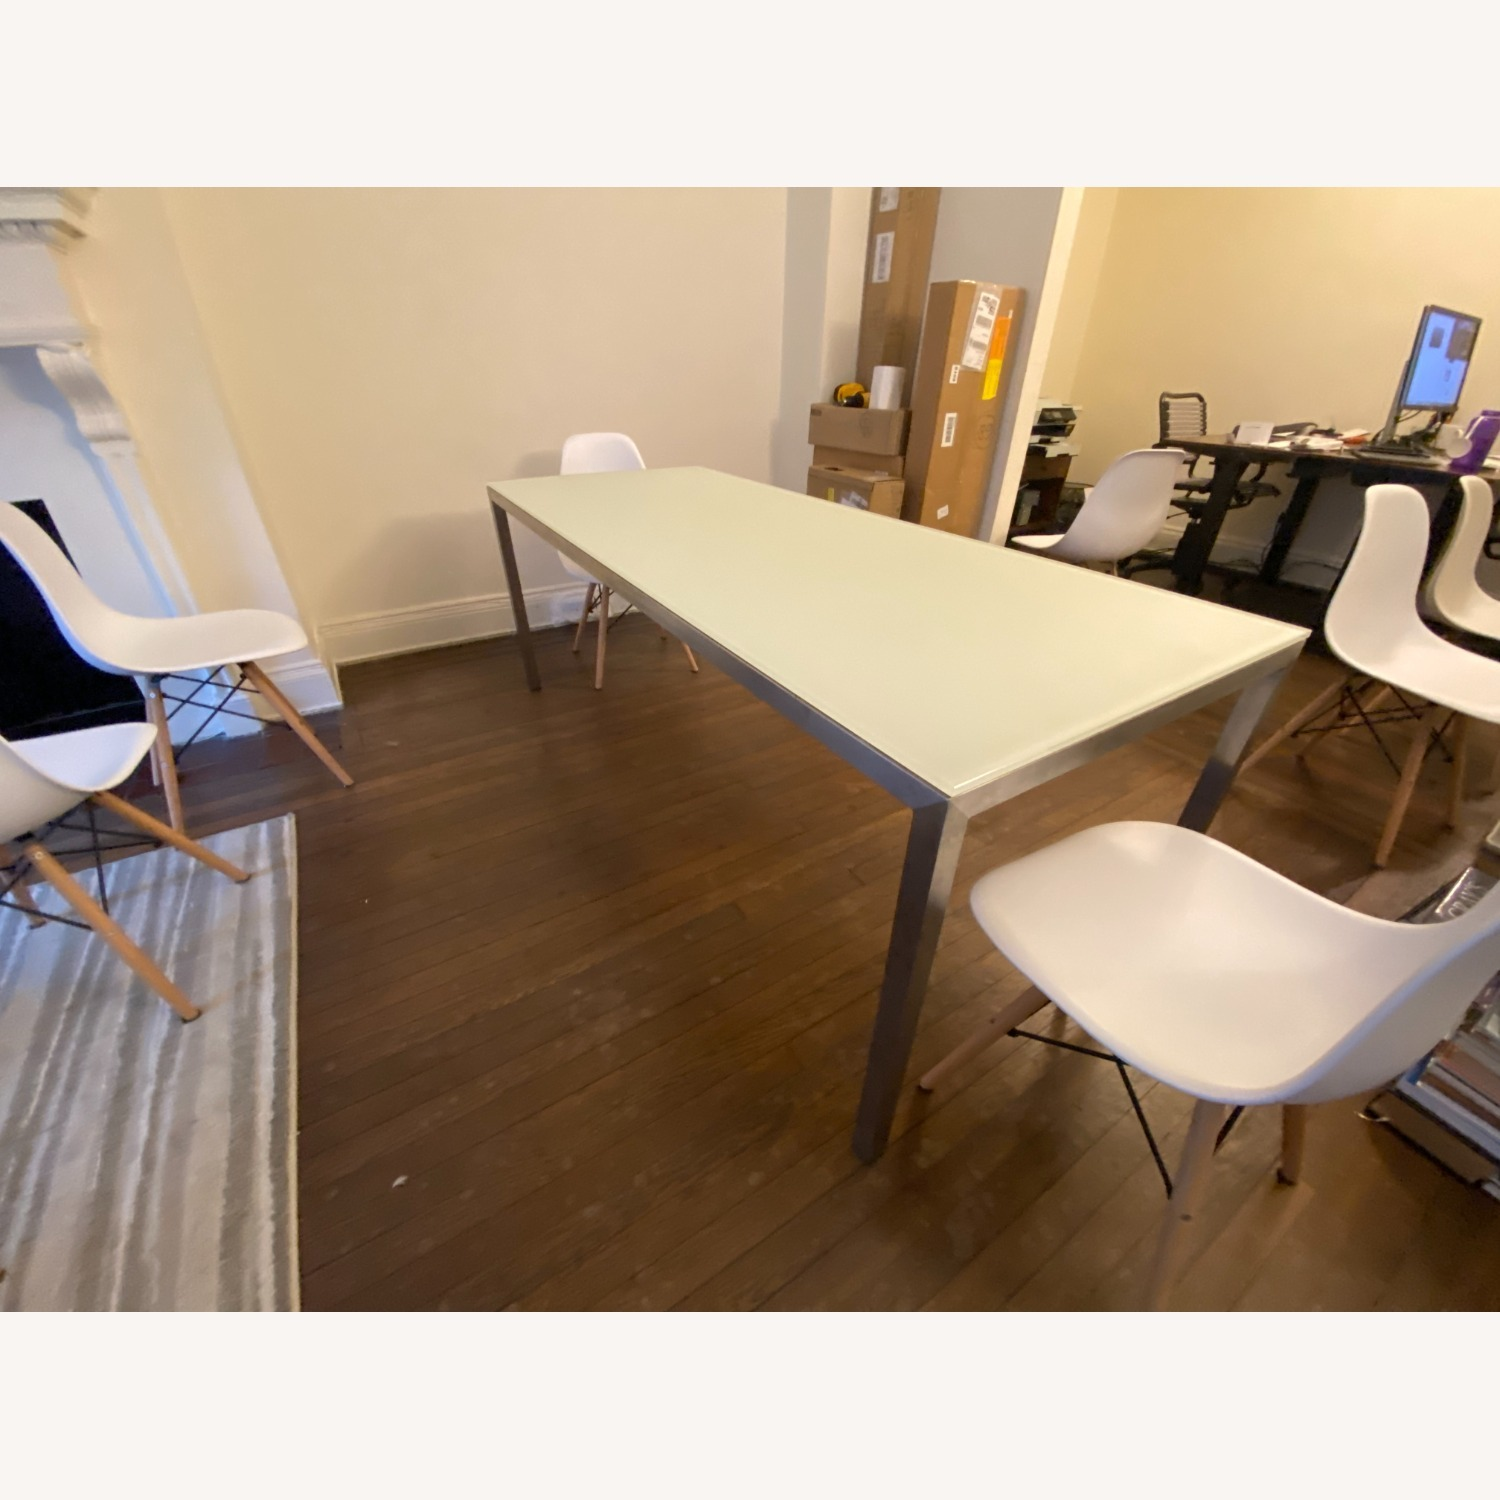 Room and Board Dining Table - image-0